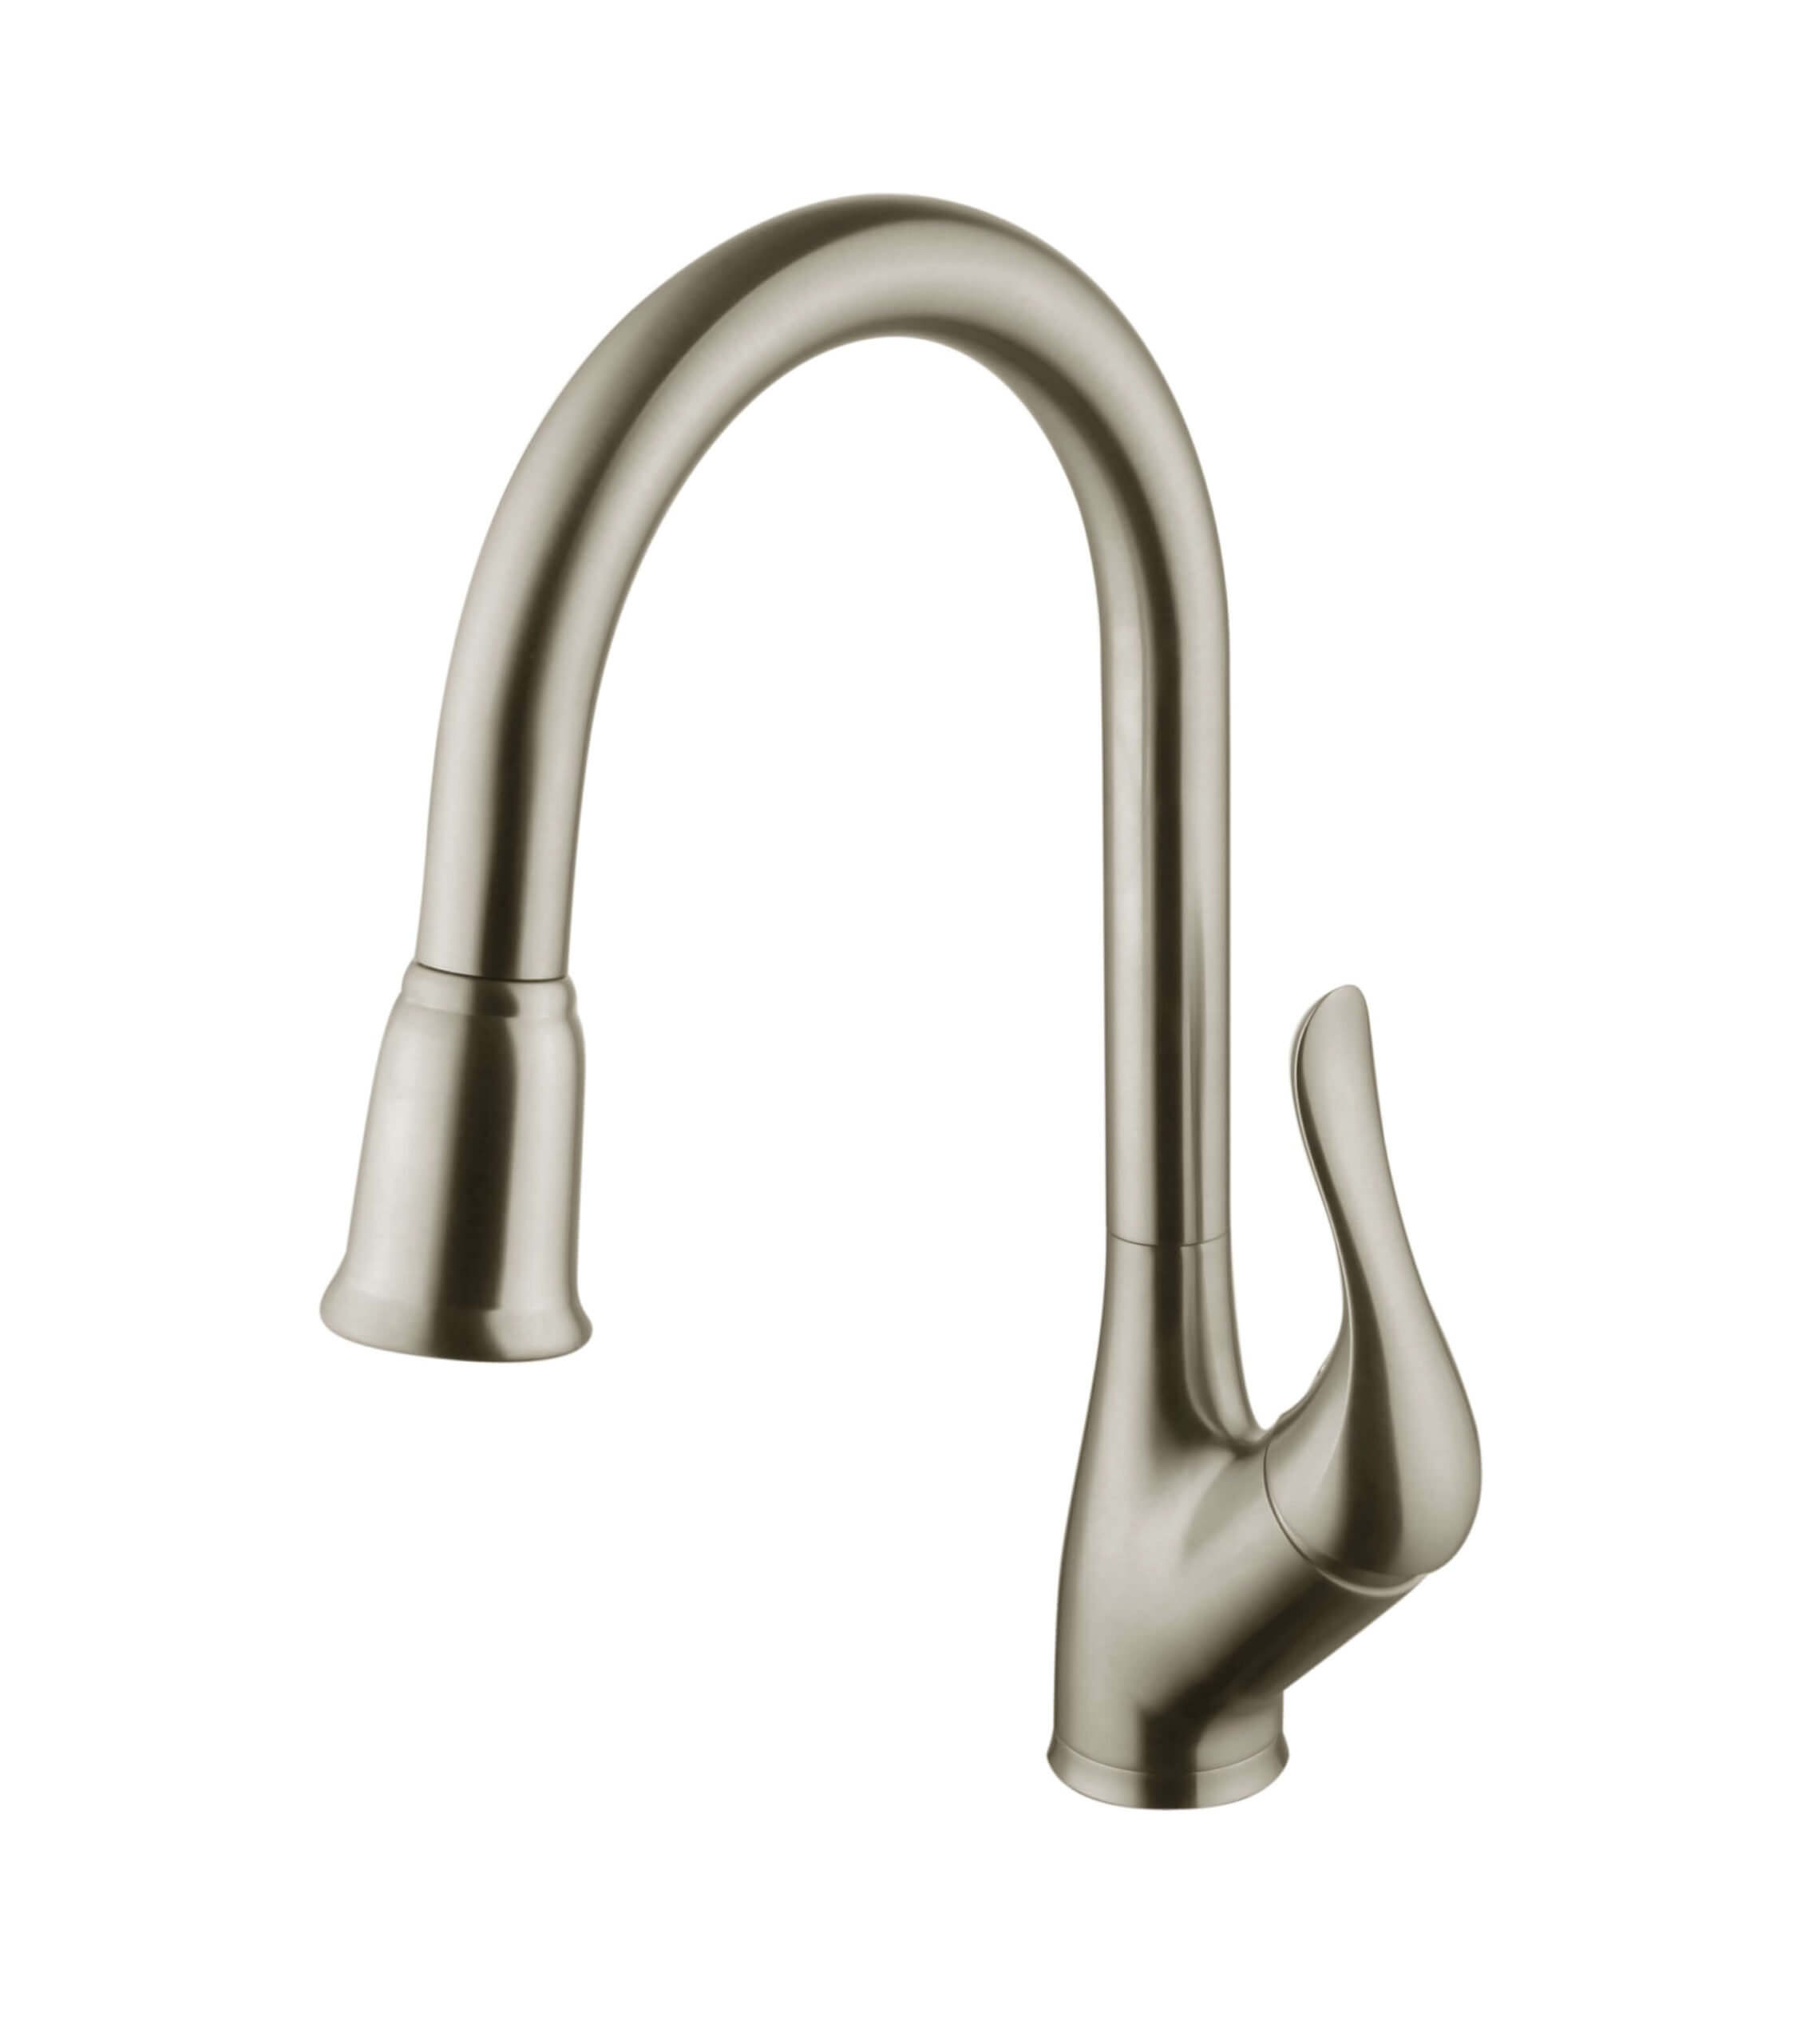 A 710 Bn Single Handle Pull Down Kitchen Faucet Allora Usa,Colors That Go With Light Purple Clothes